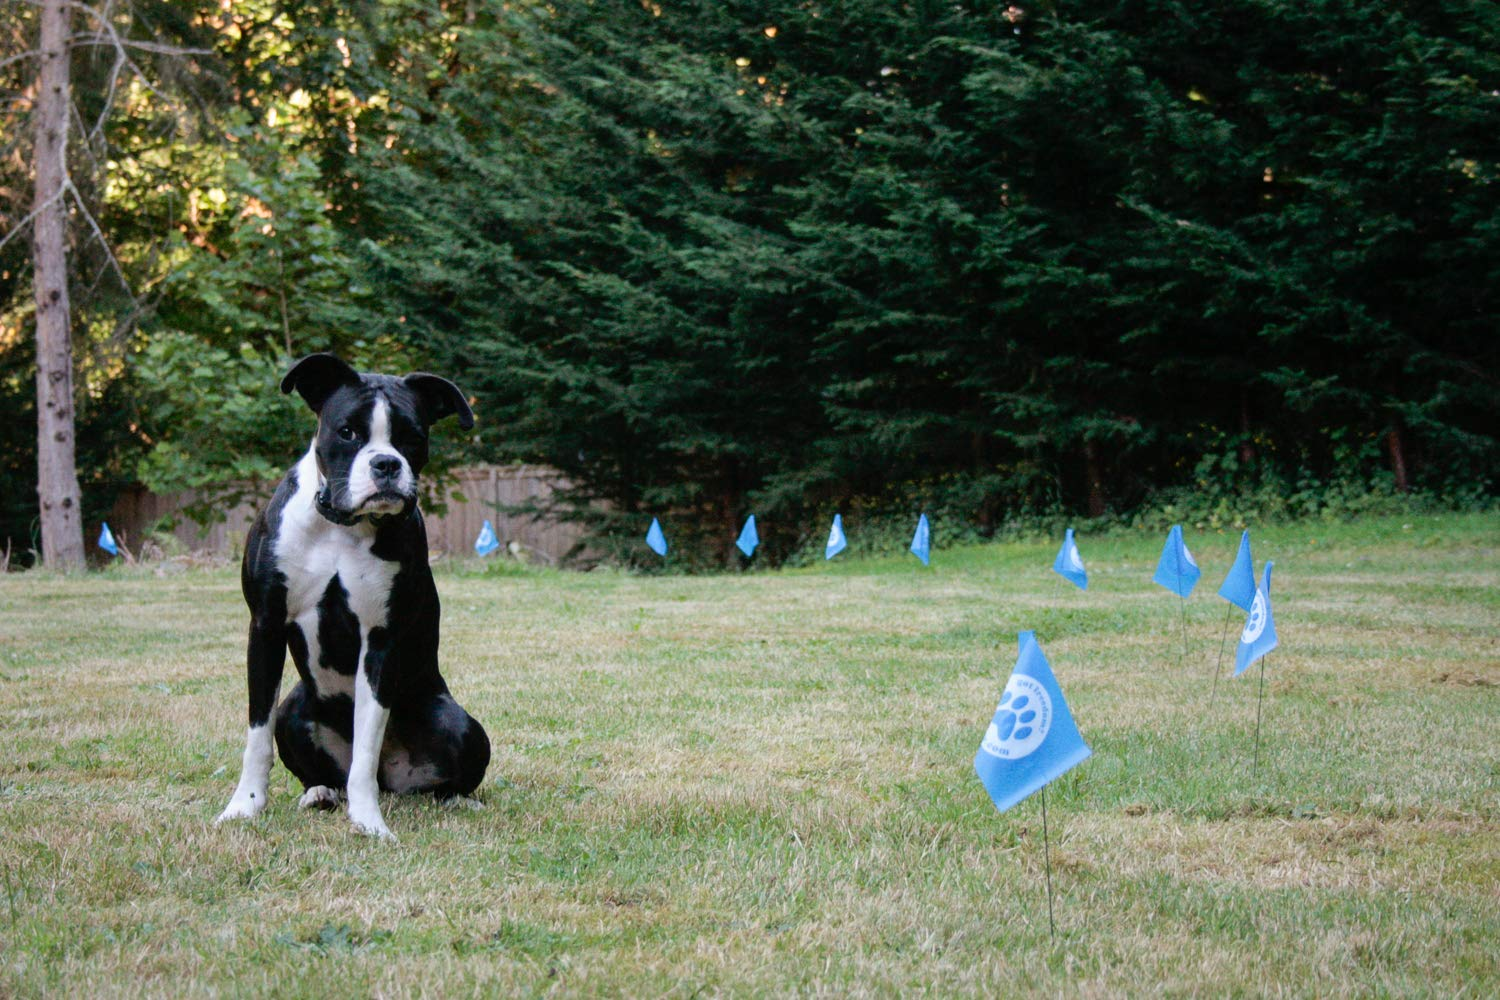 Set of 50 Educator FLAGS-50 Boundary Flags for E-Fence Underground Fence Containment System for Dogs,